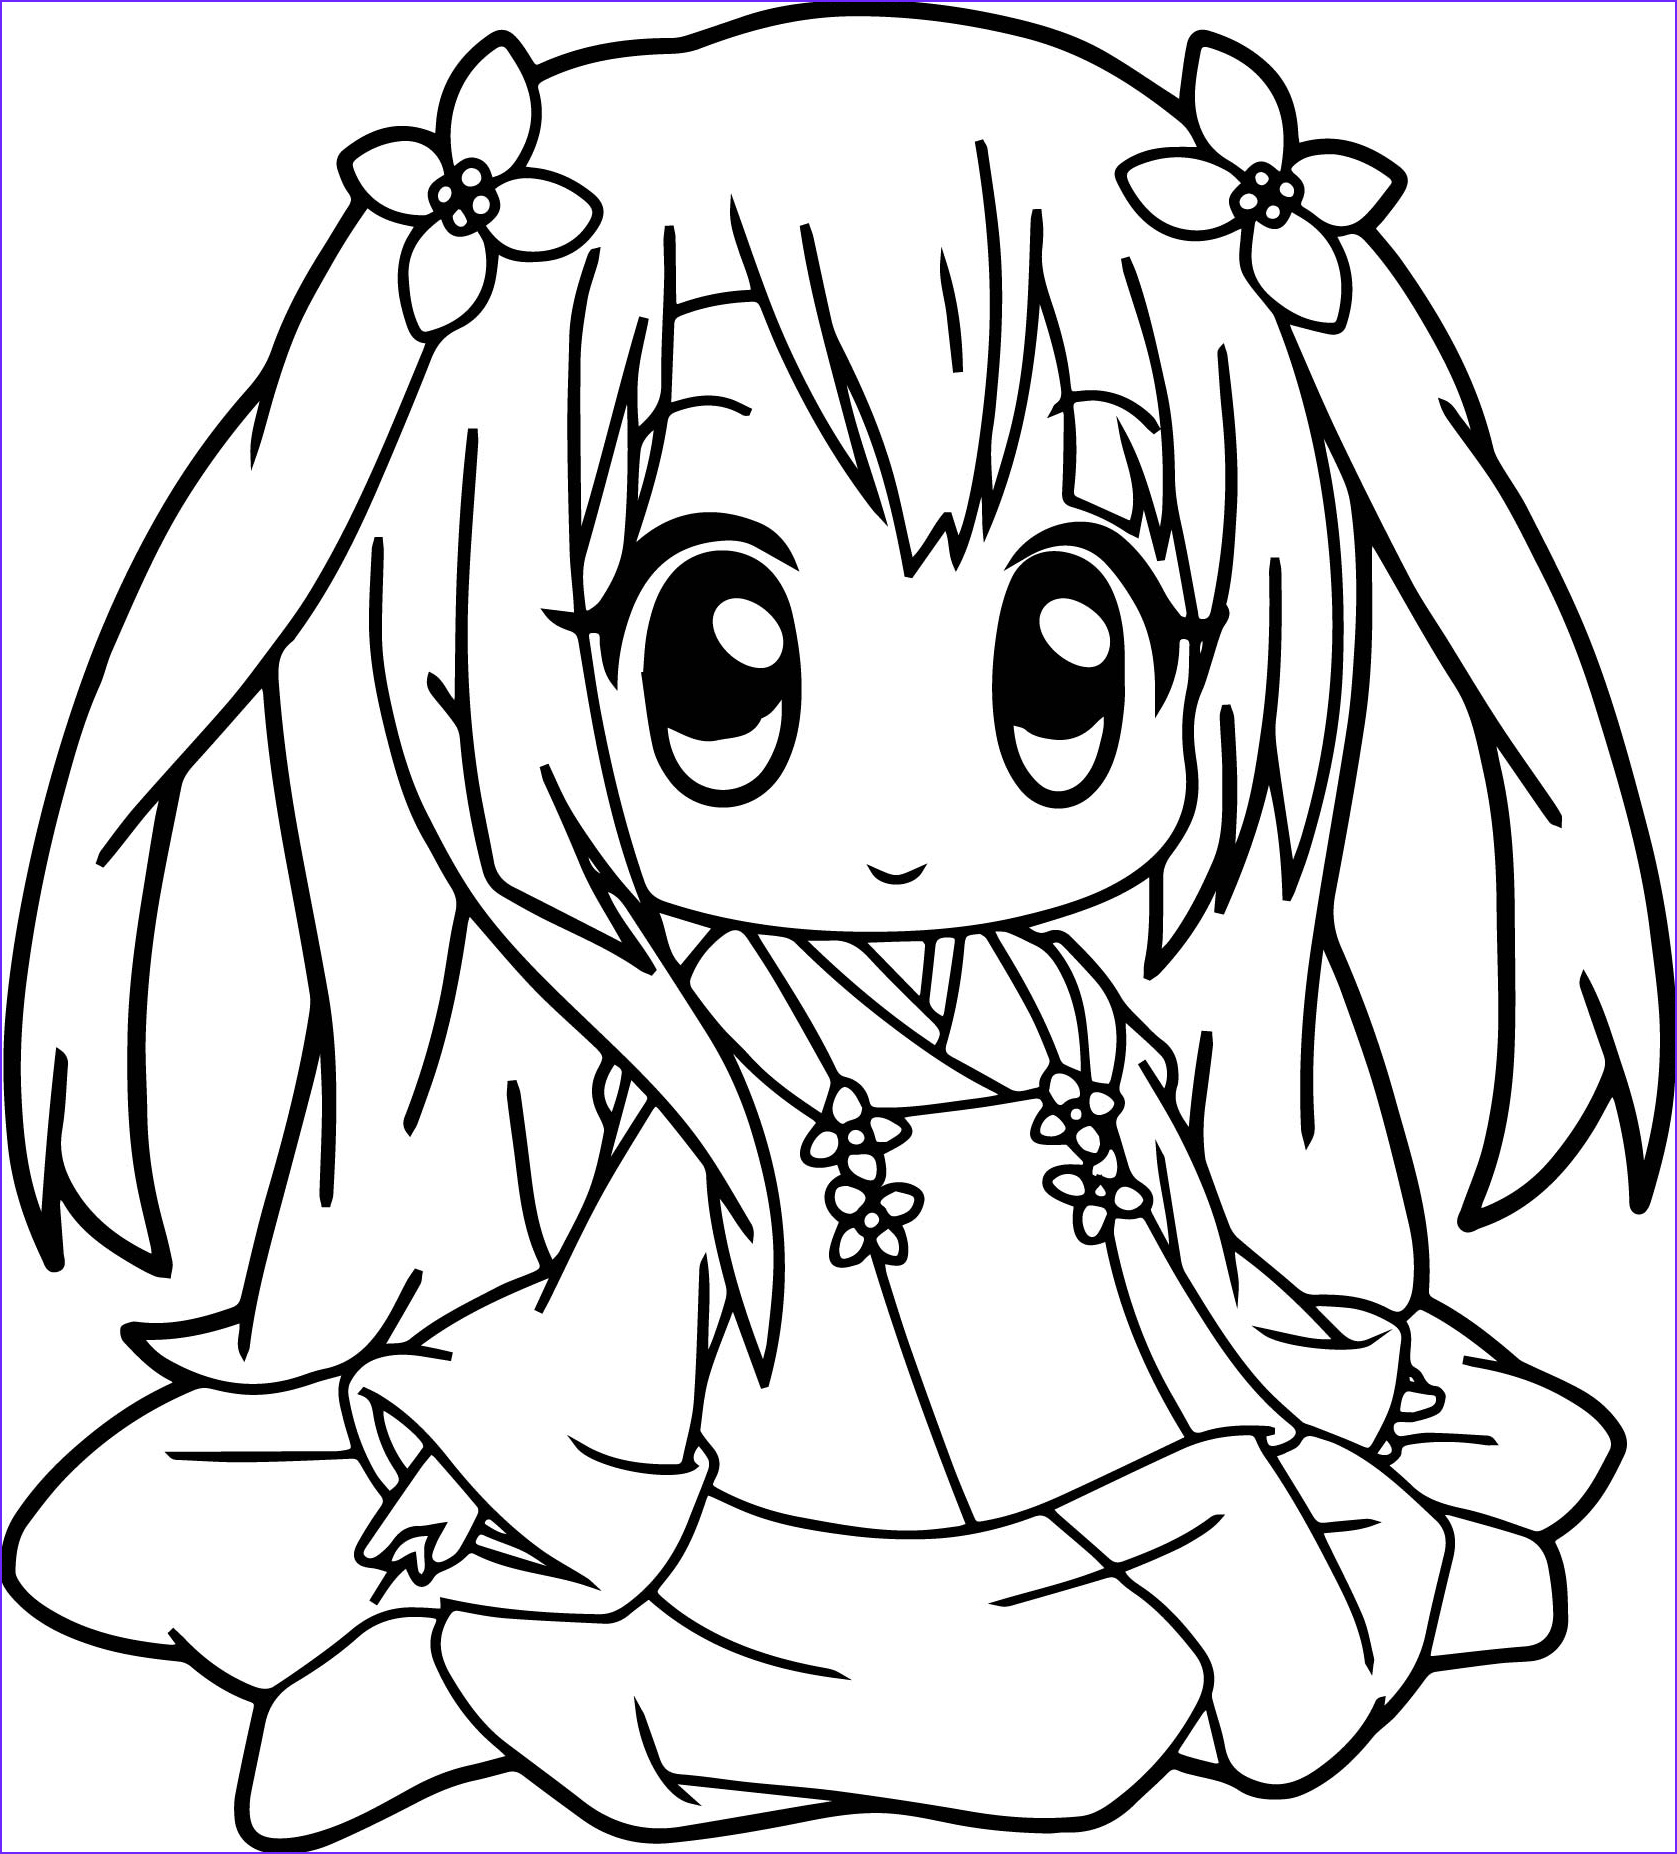 Cute Anime Coloring Pages Luxury Photography Anime Girl Coloring Pages Coloringsuite